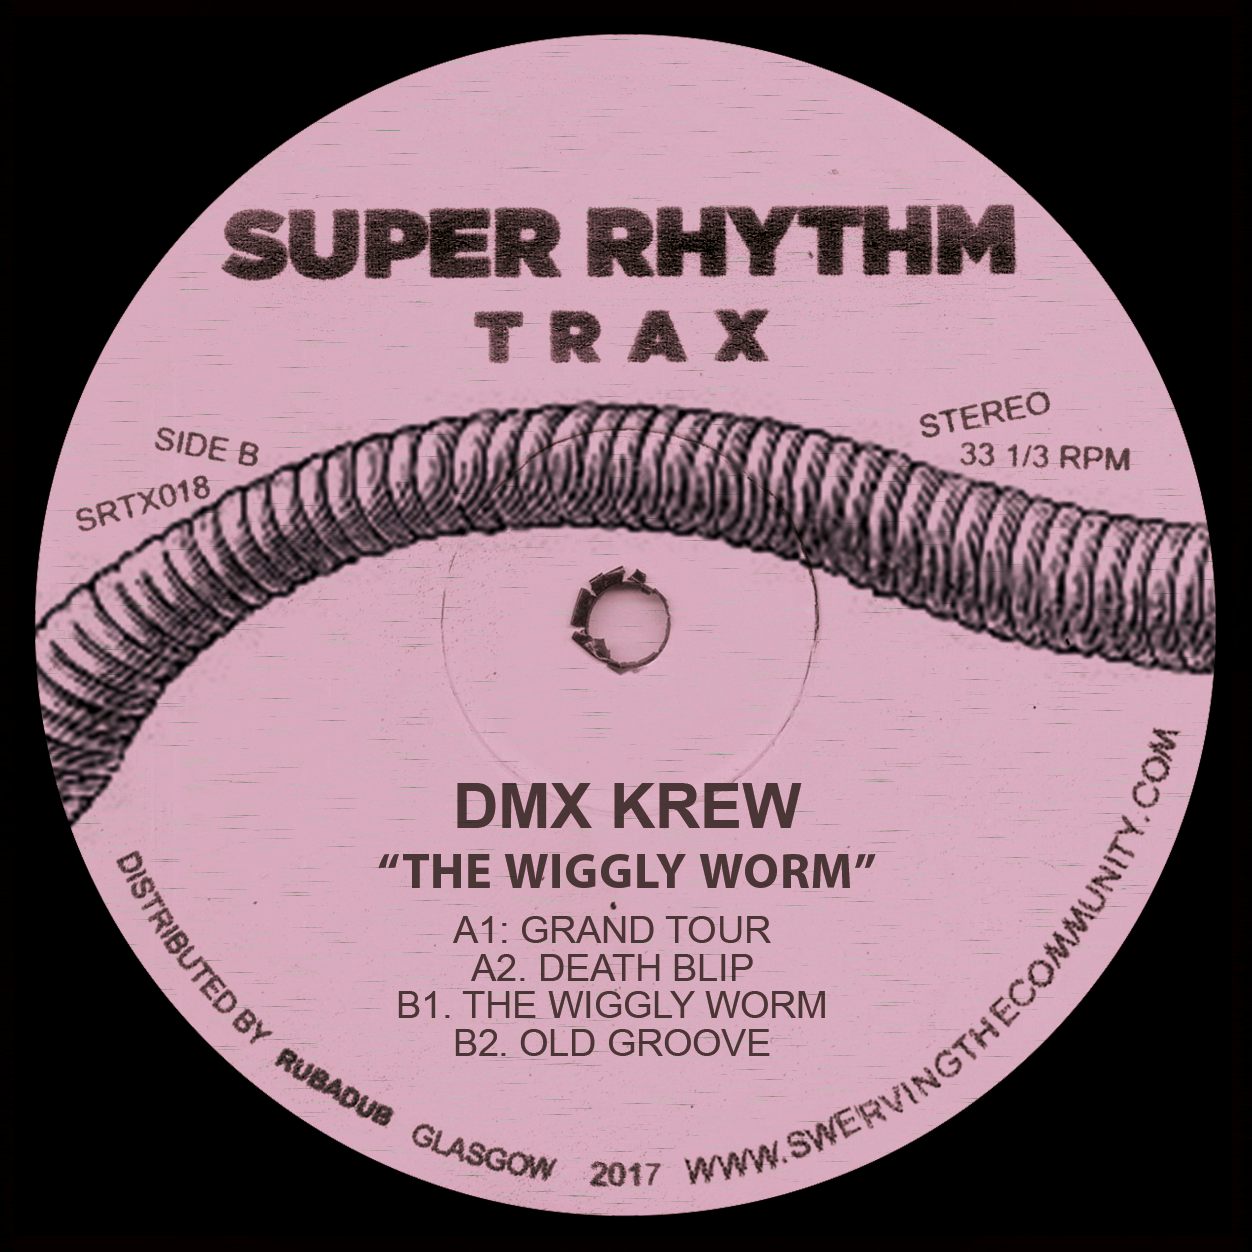 DMX Krew/THE WIGGLY WORM 12""